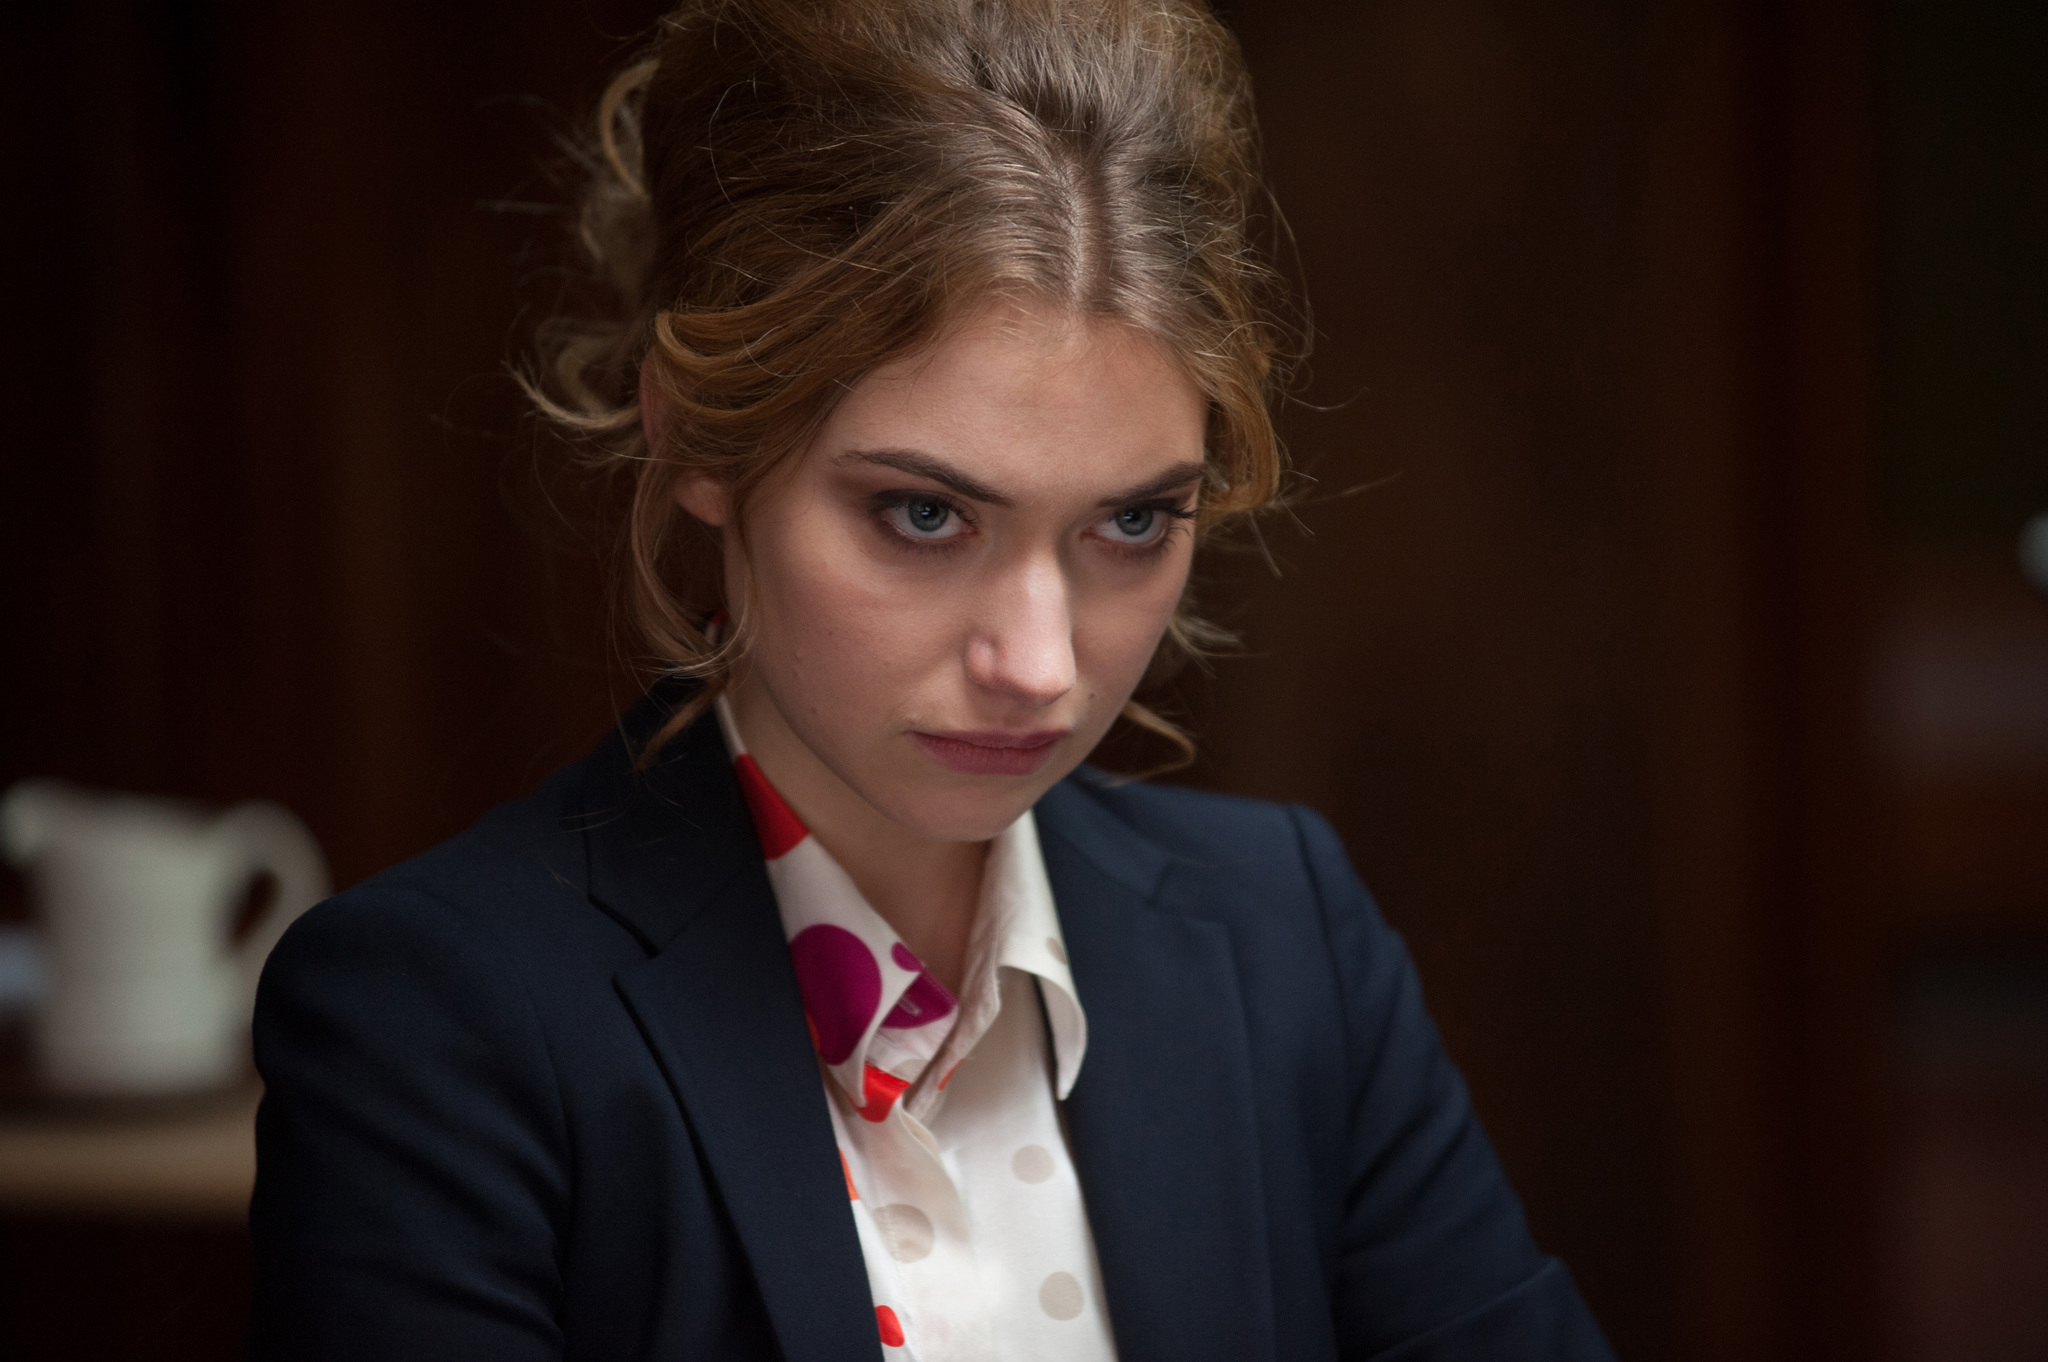 Imogen Poots in Filth (2013)